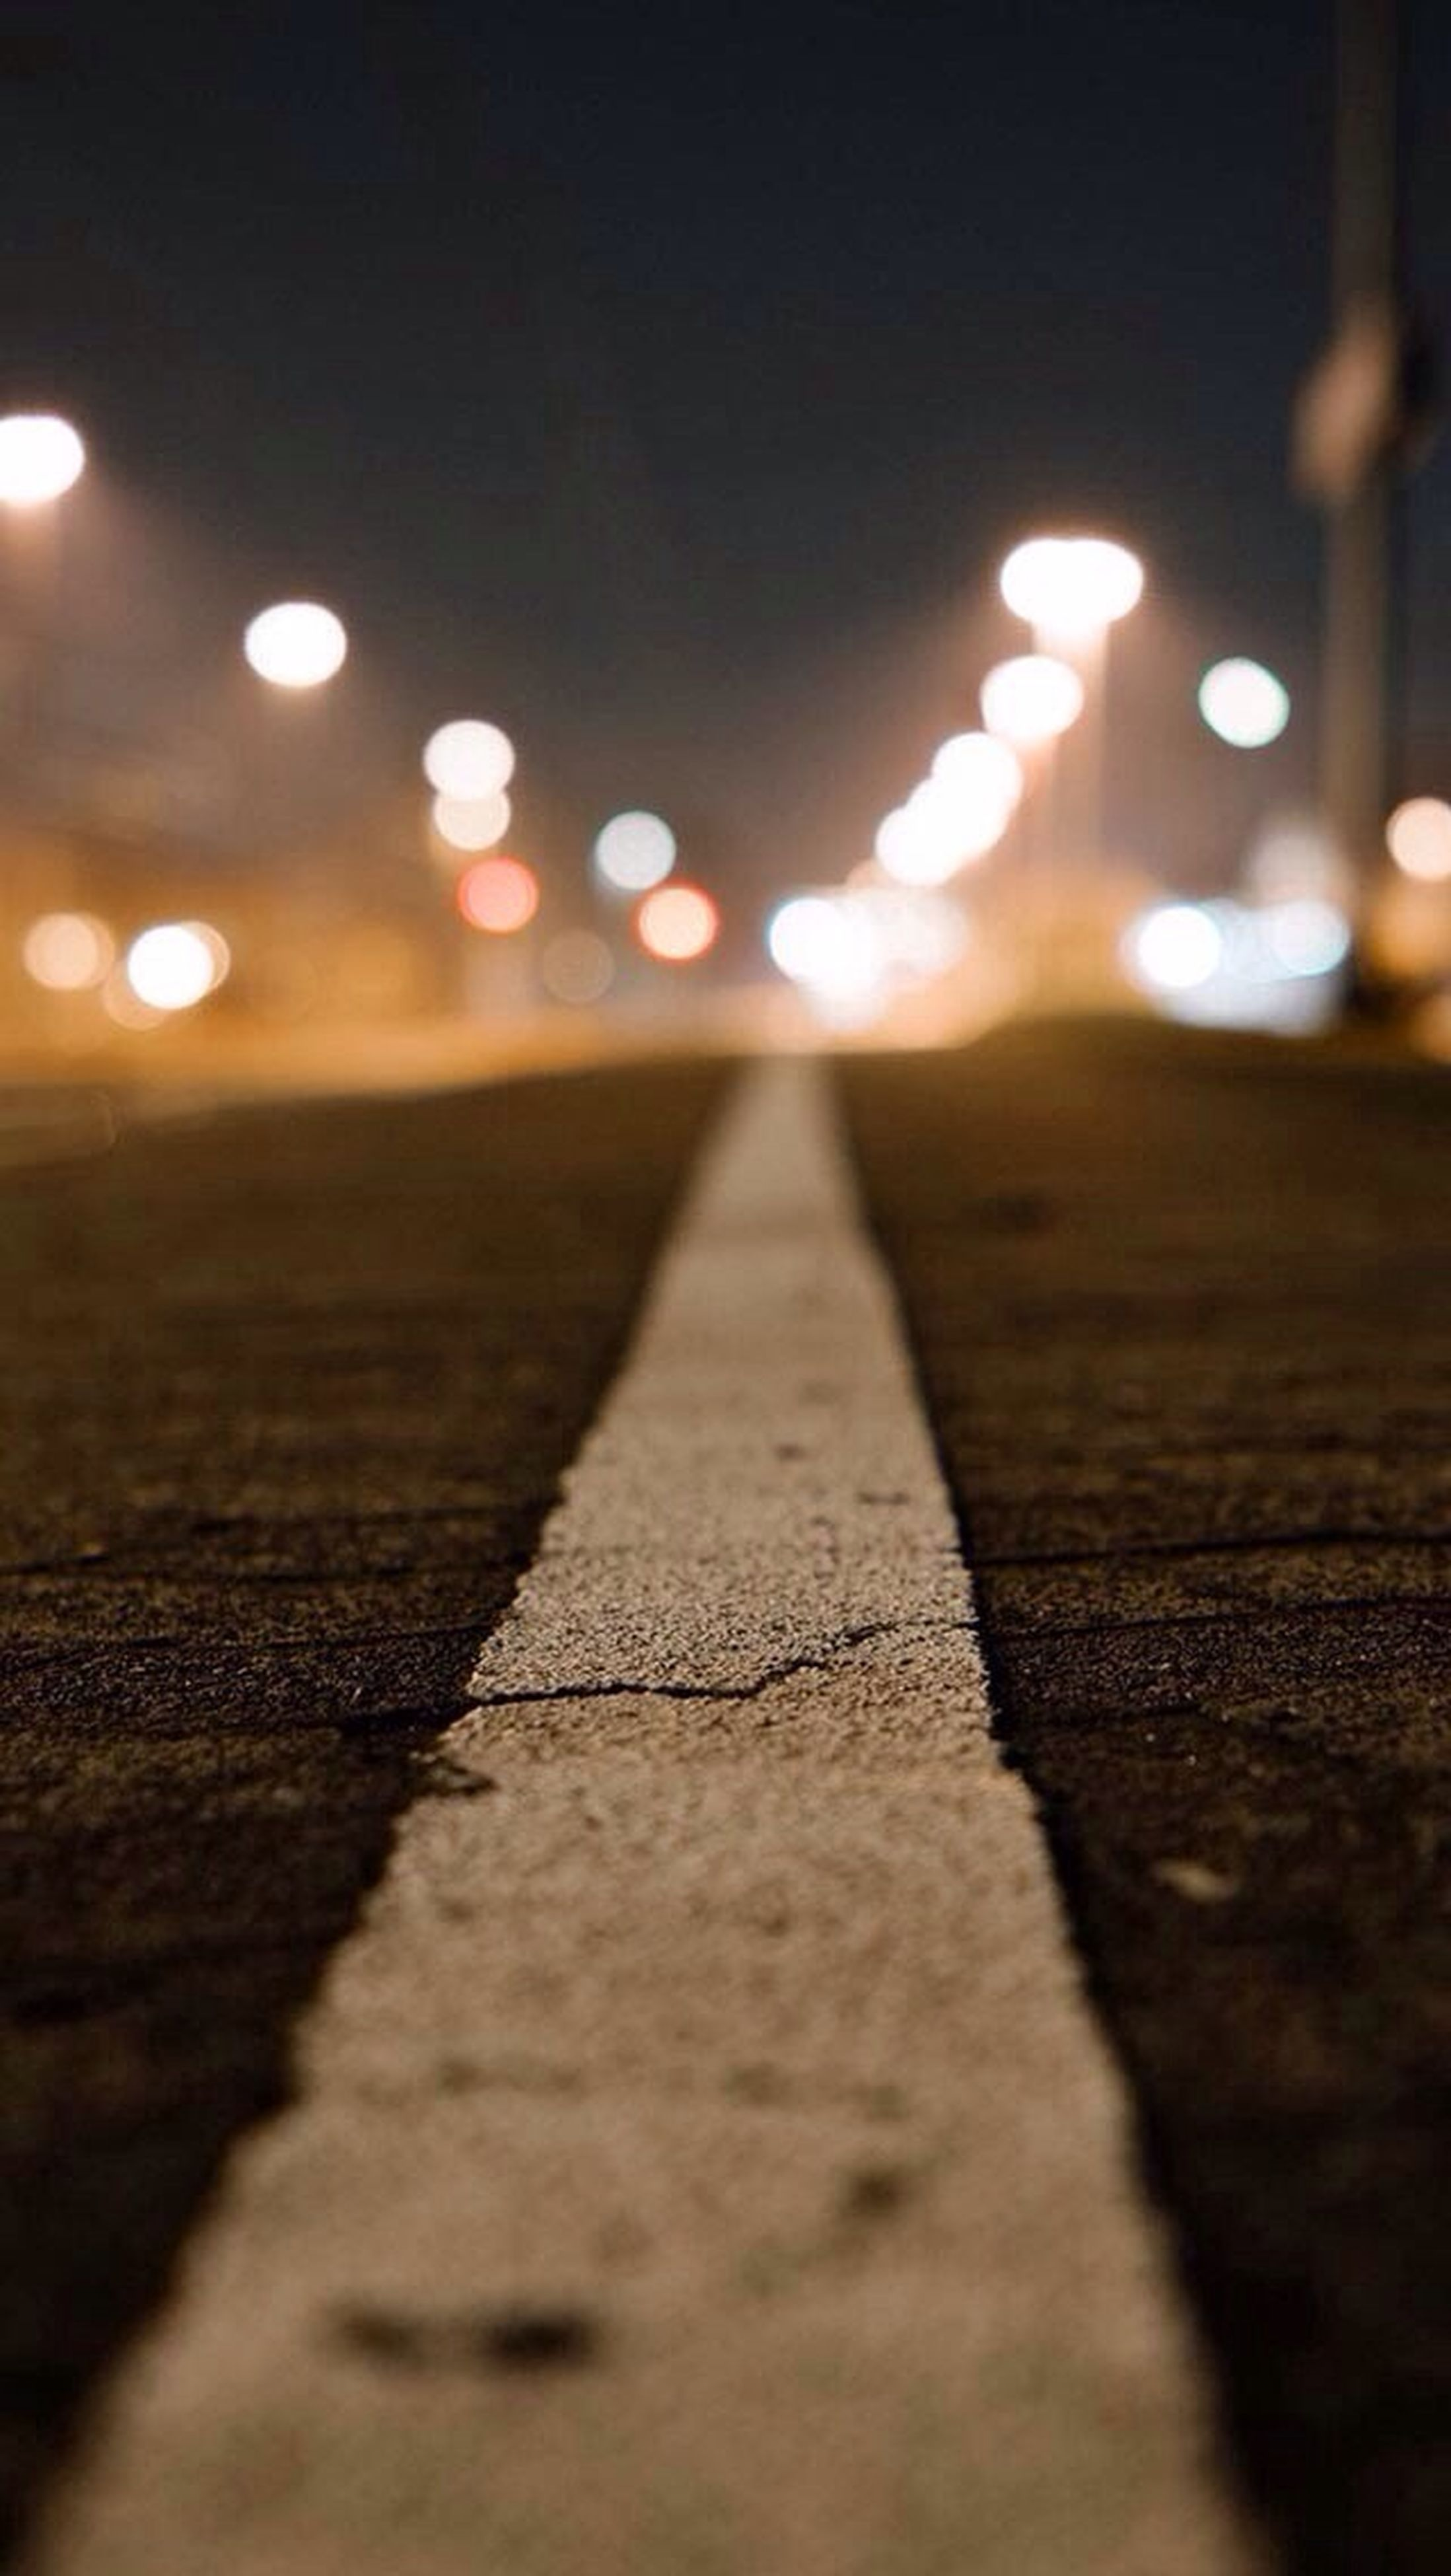 surface level, defocused, selective focus, illuminated, street, lens flare, night, road, asphalt, focus on foreground, the way forward, sunset, outdoors, wet, transportation, no people, sunlight, road marking, sky, close-up